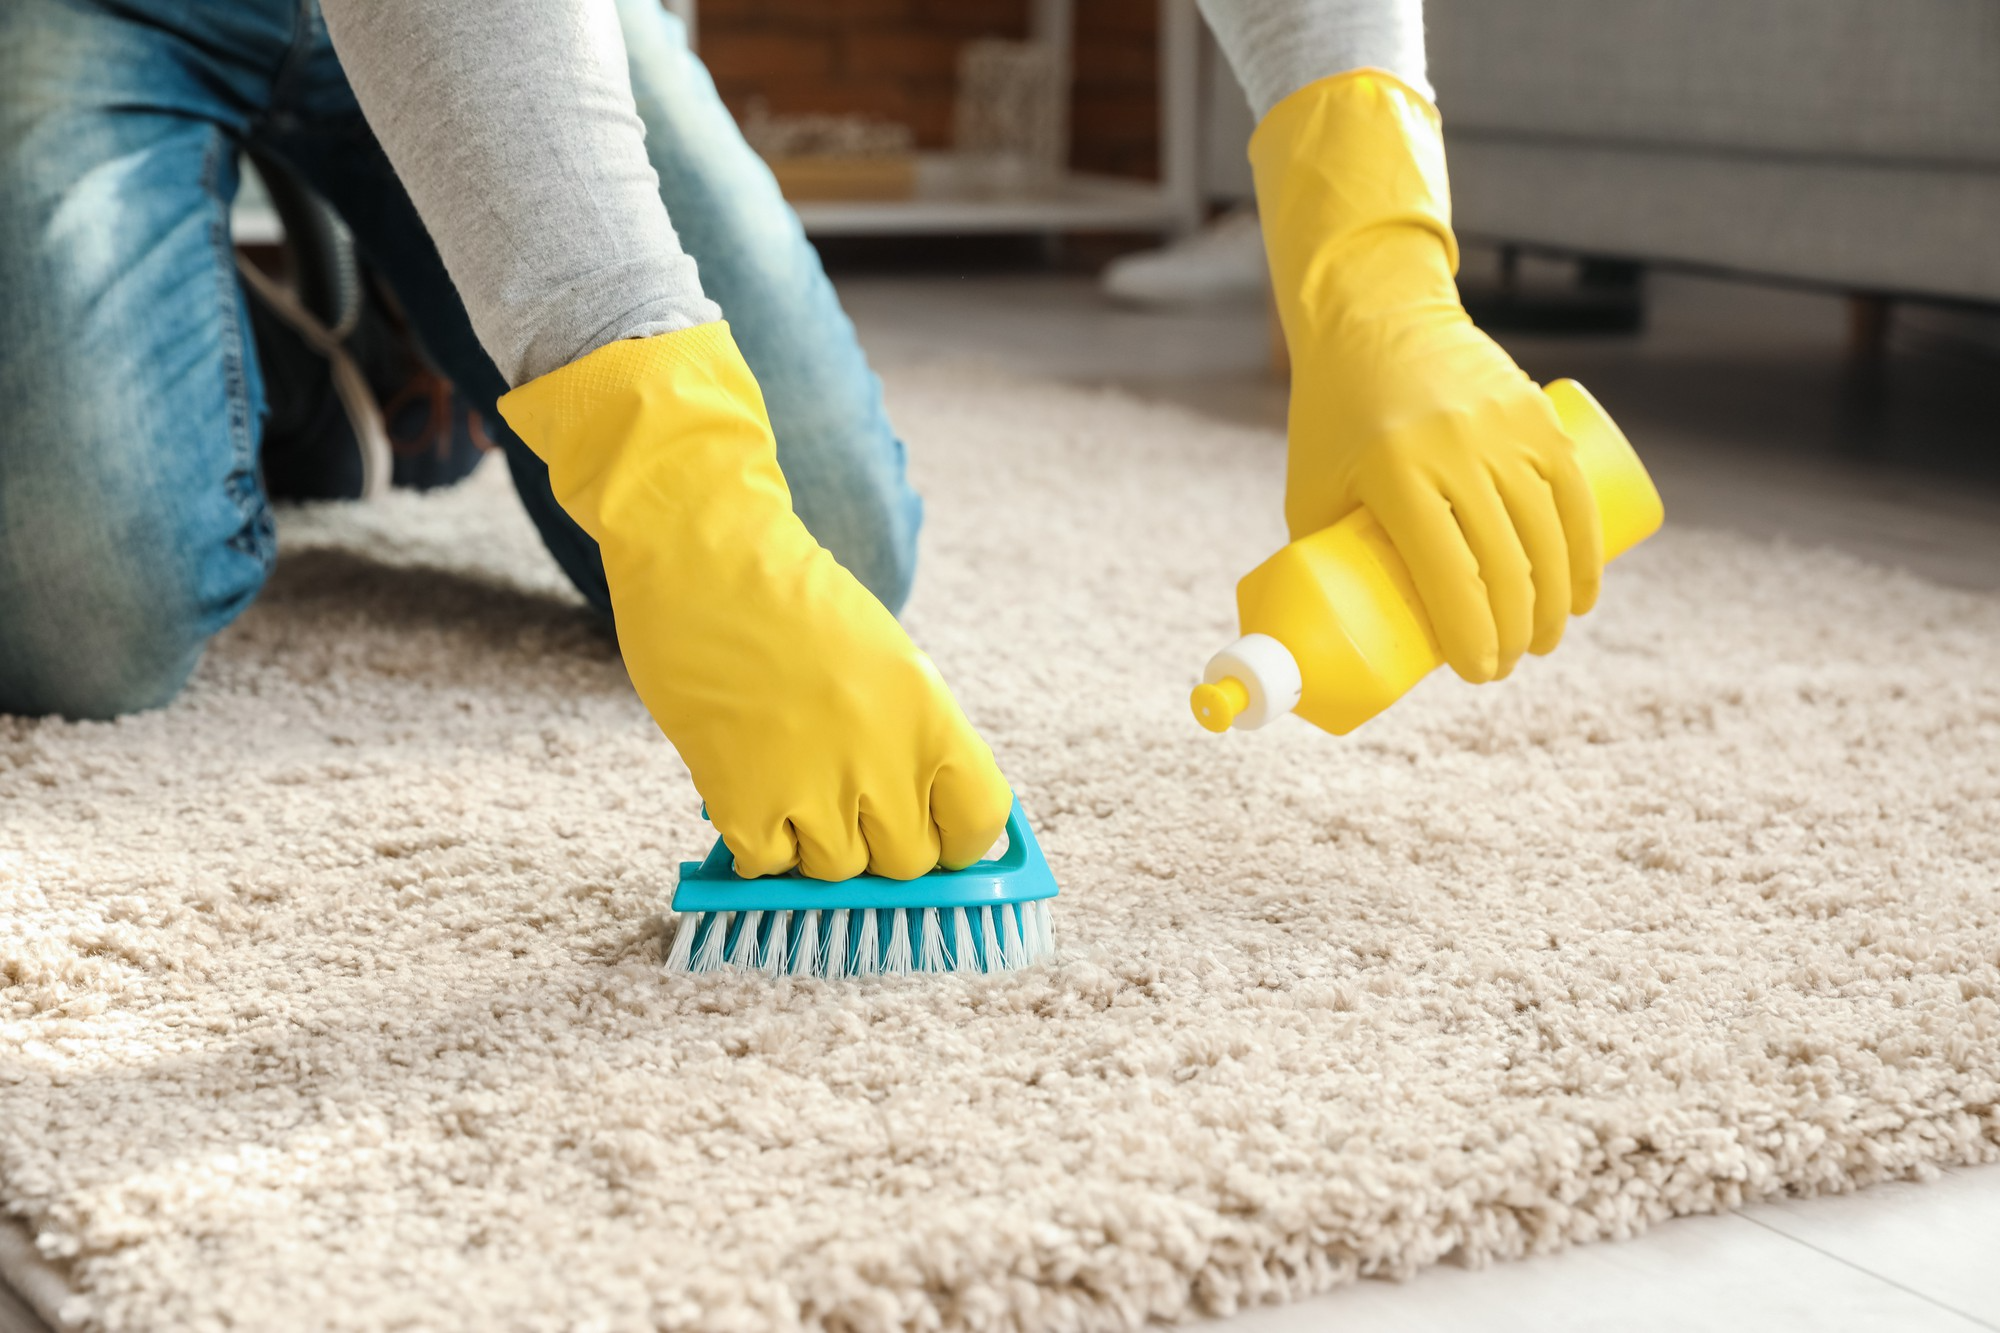 Woman holding scrubber applies cleaner on rug